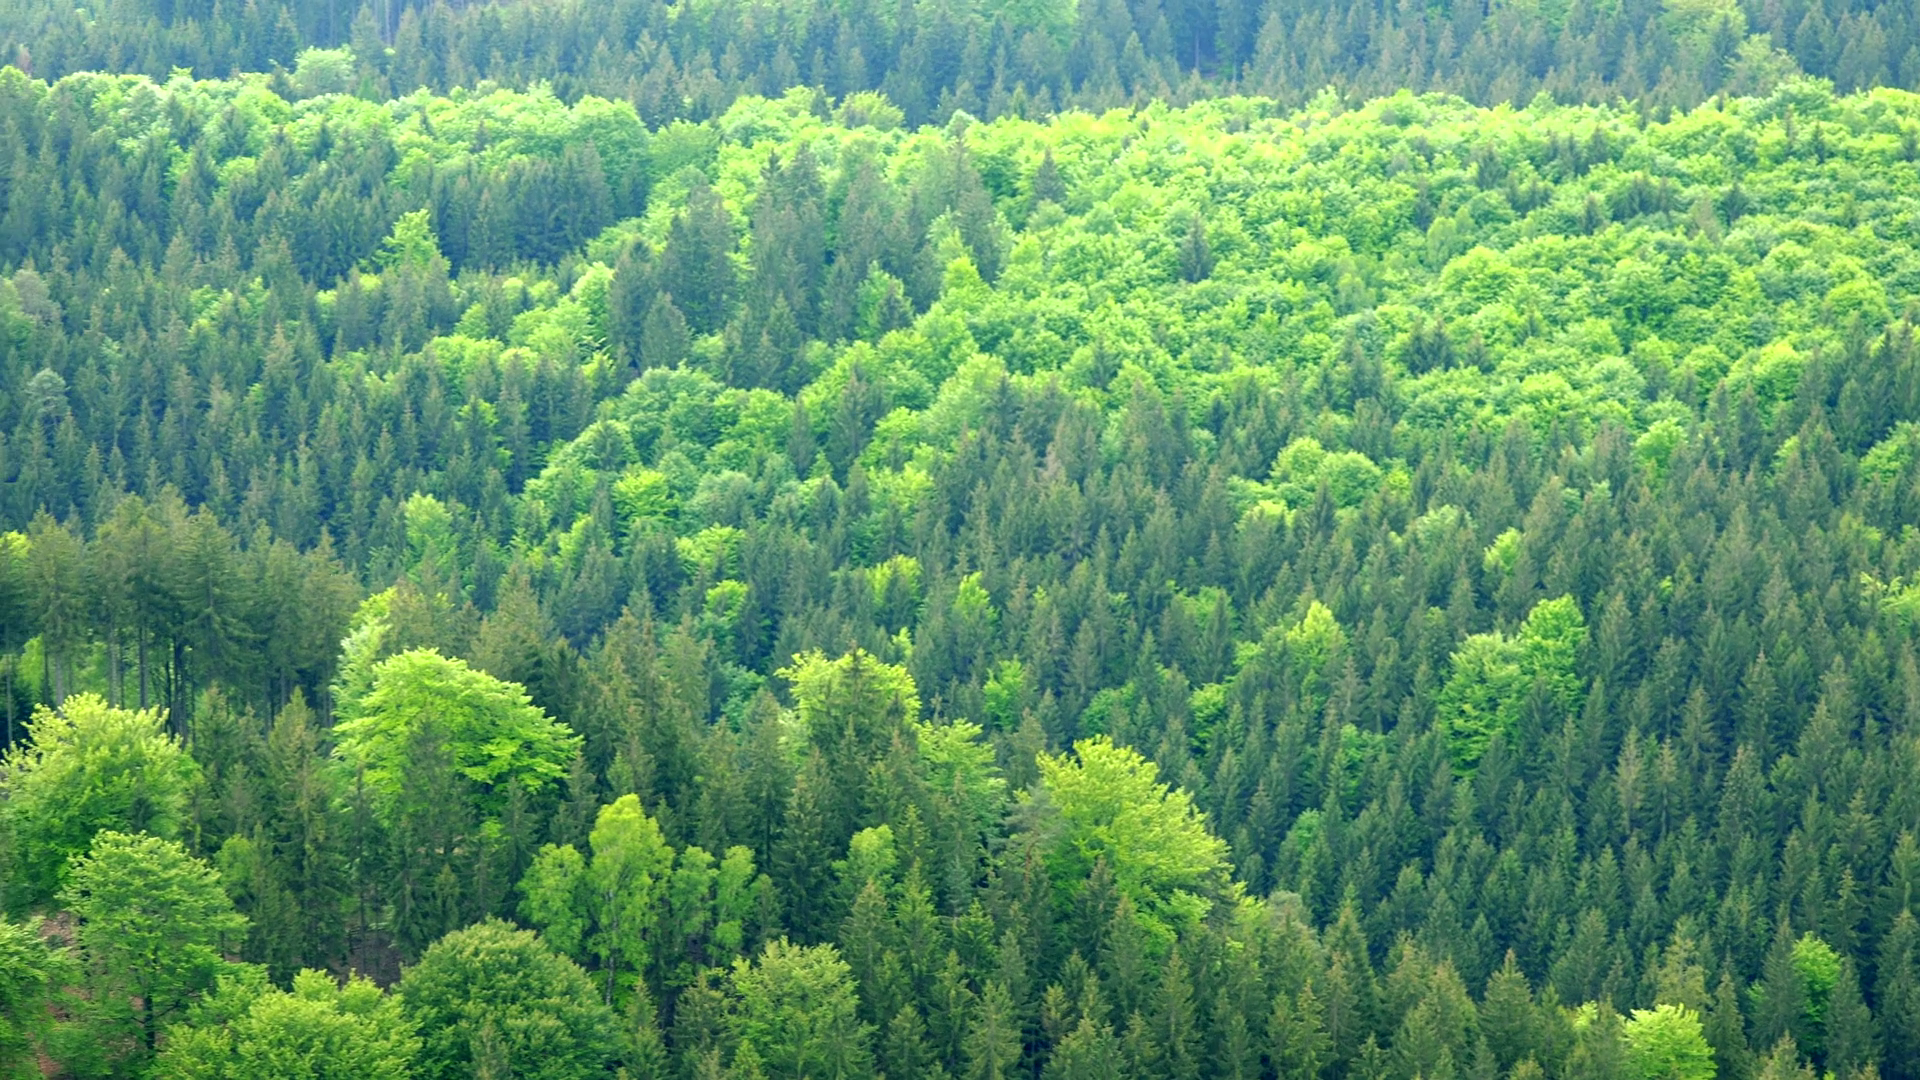 a-vast-and-thick-forest-area-top-view_schvdvgtl_thumbnail-full01